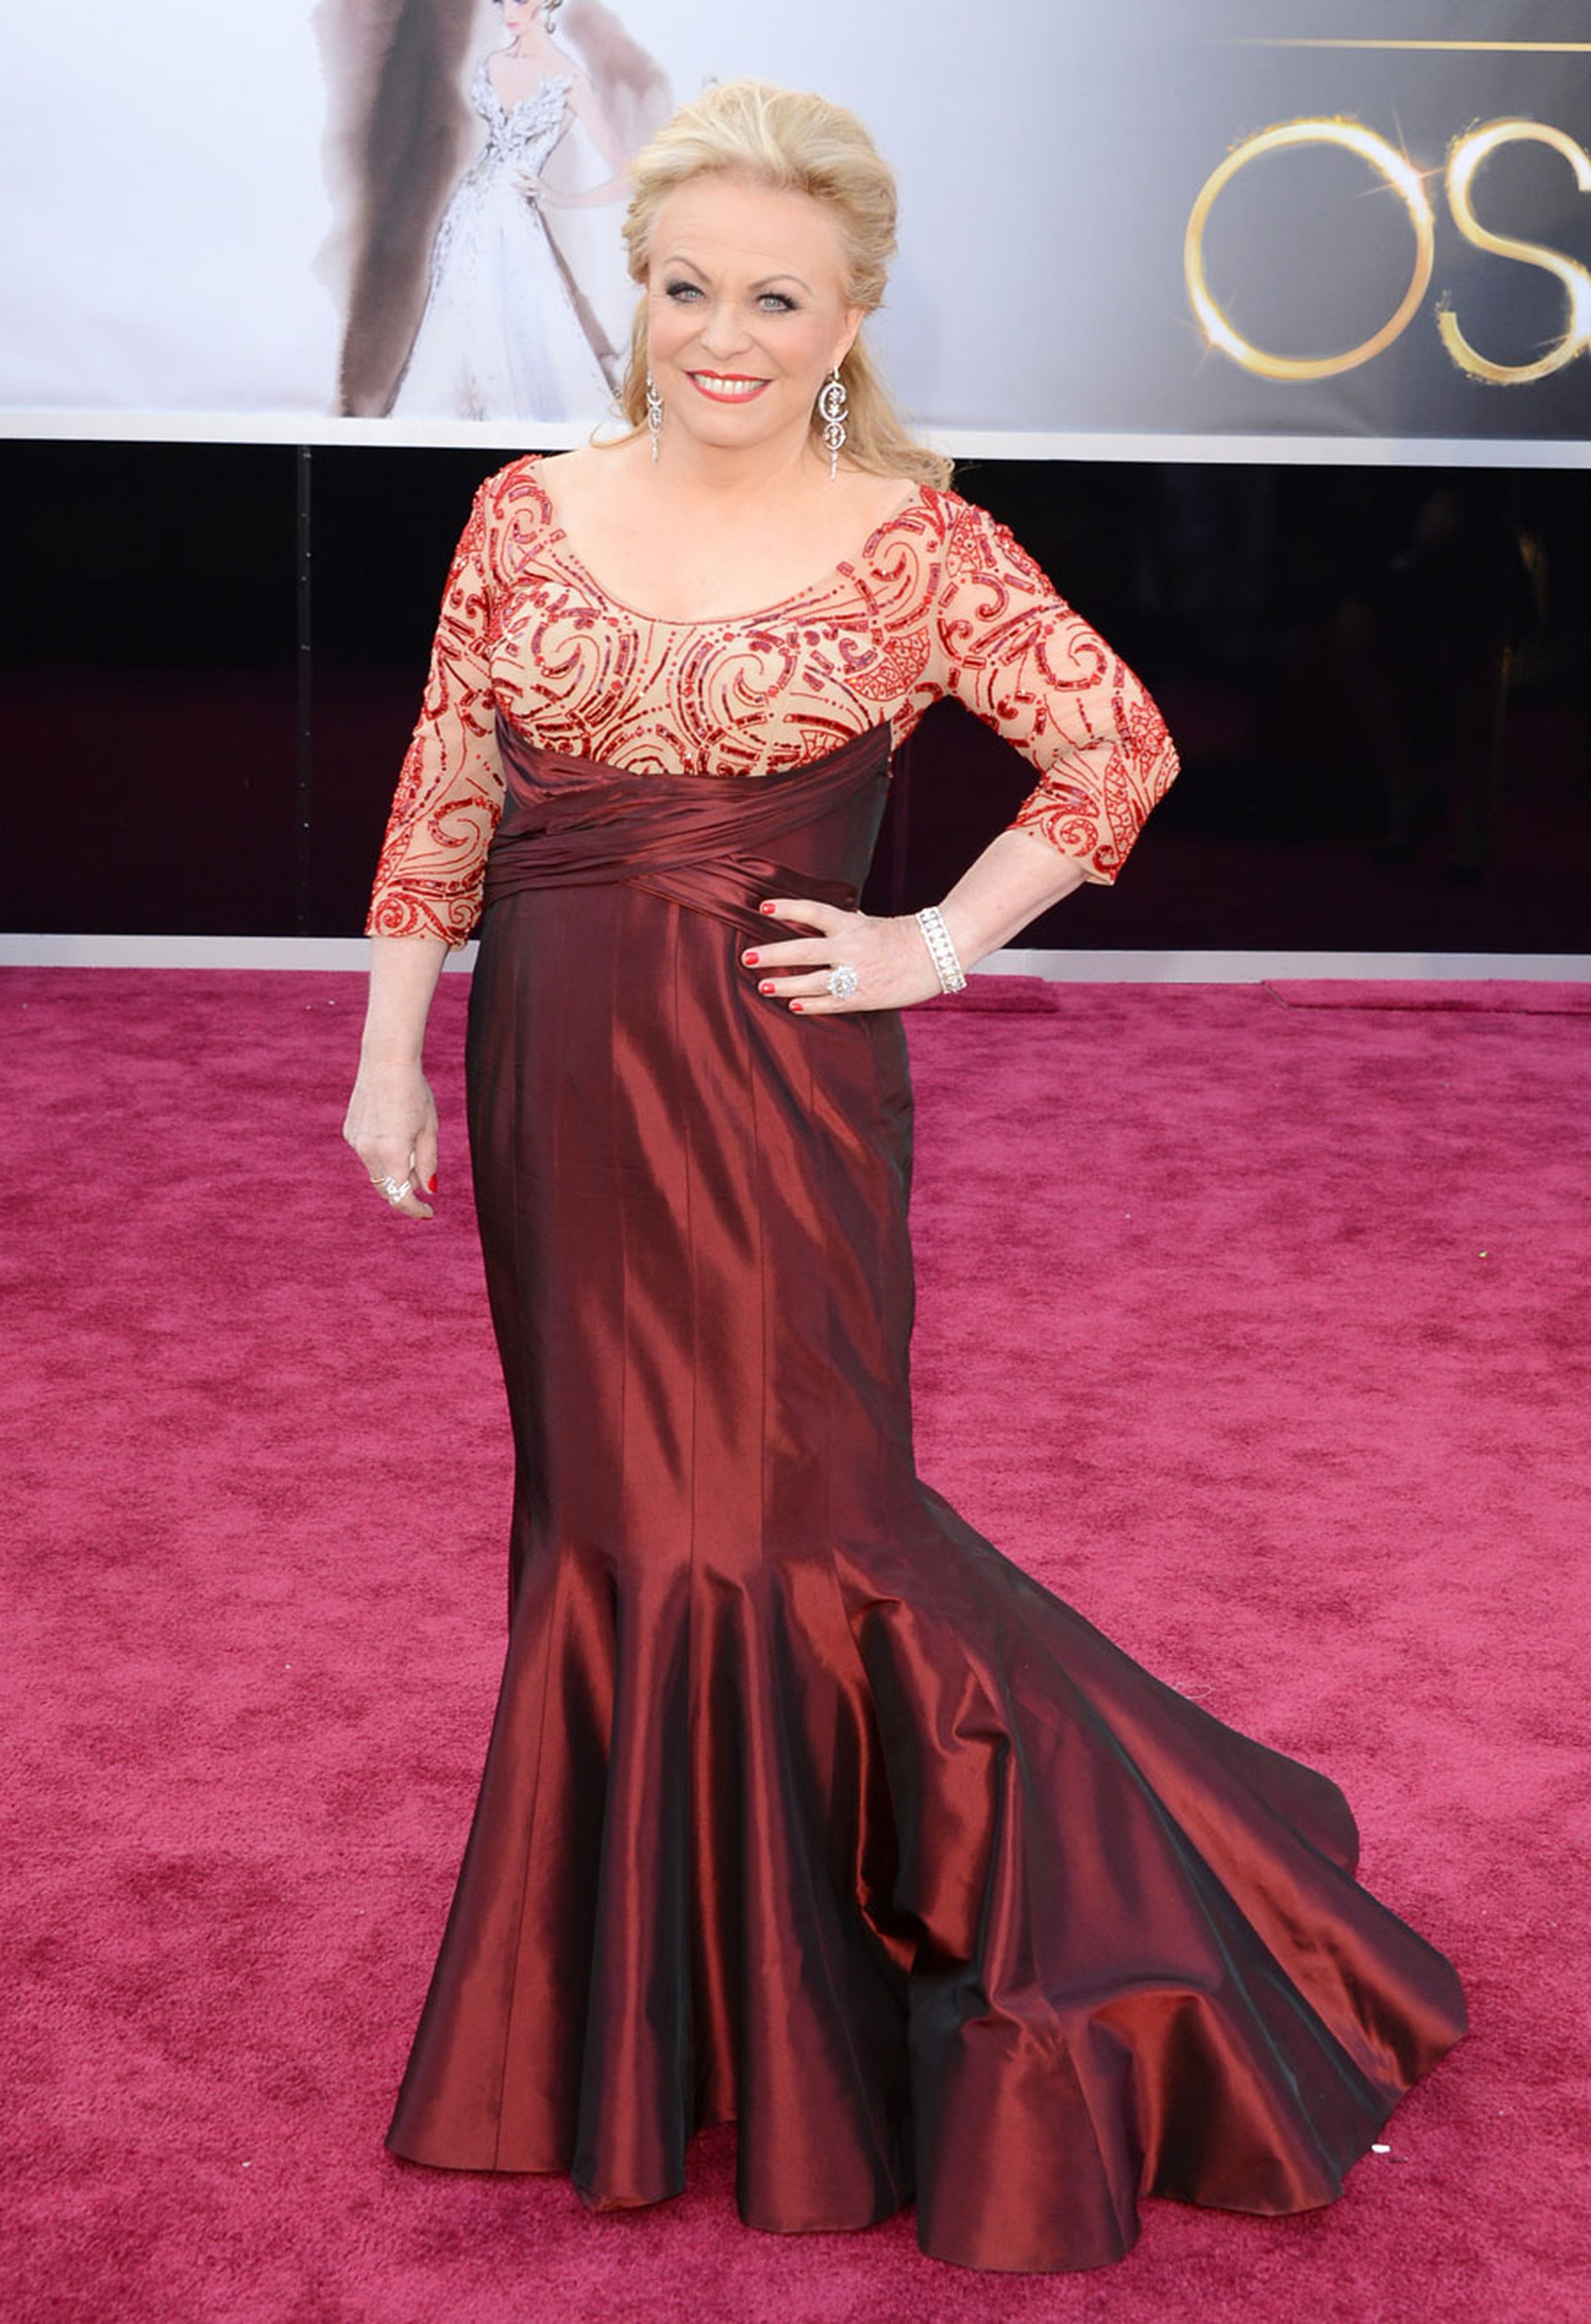 Jacki-Weaver-in-Forevermark-Diamonds-at-the-Oscars.jpg